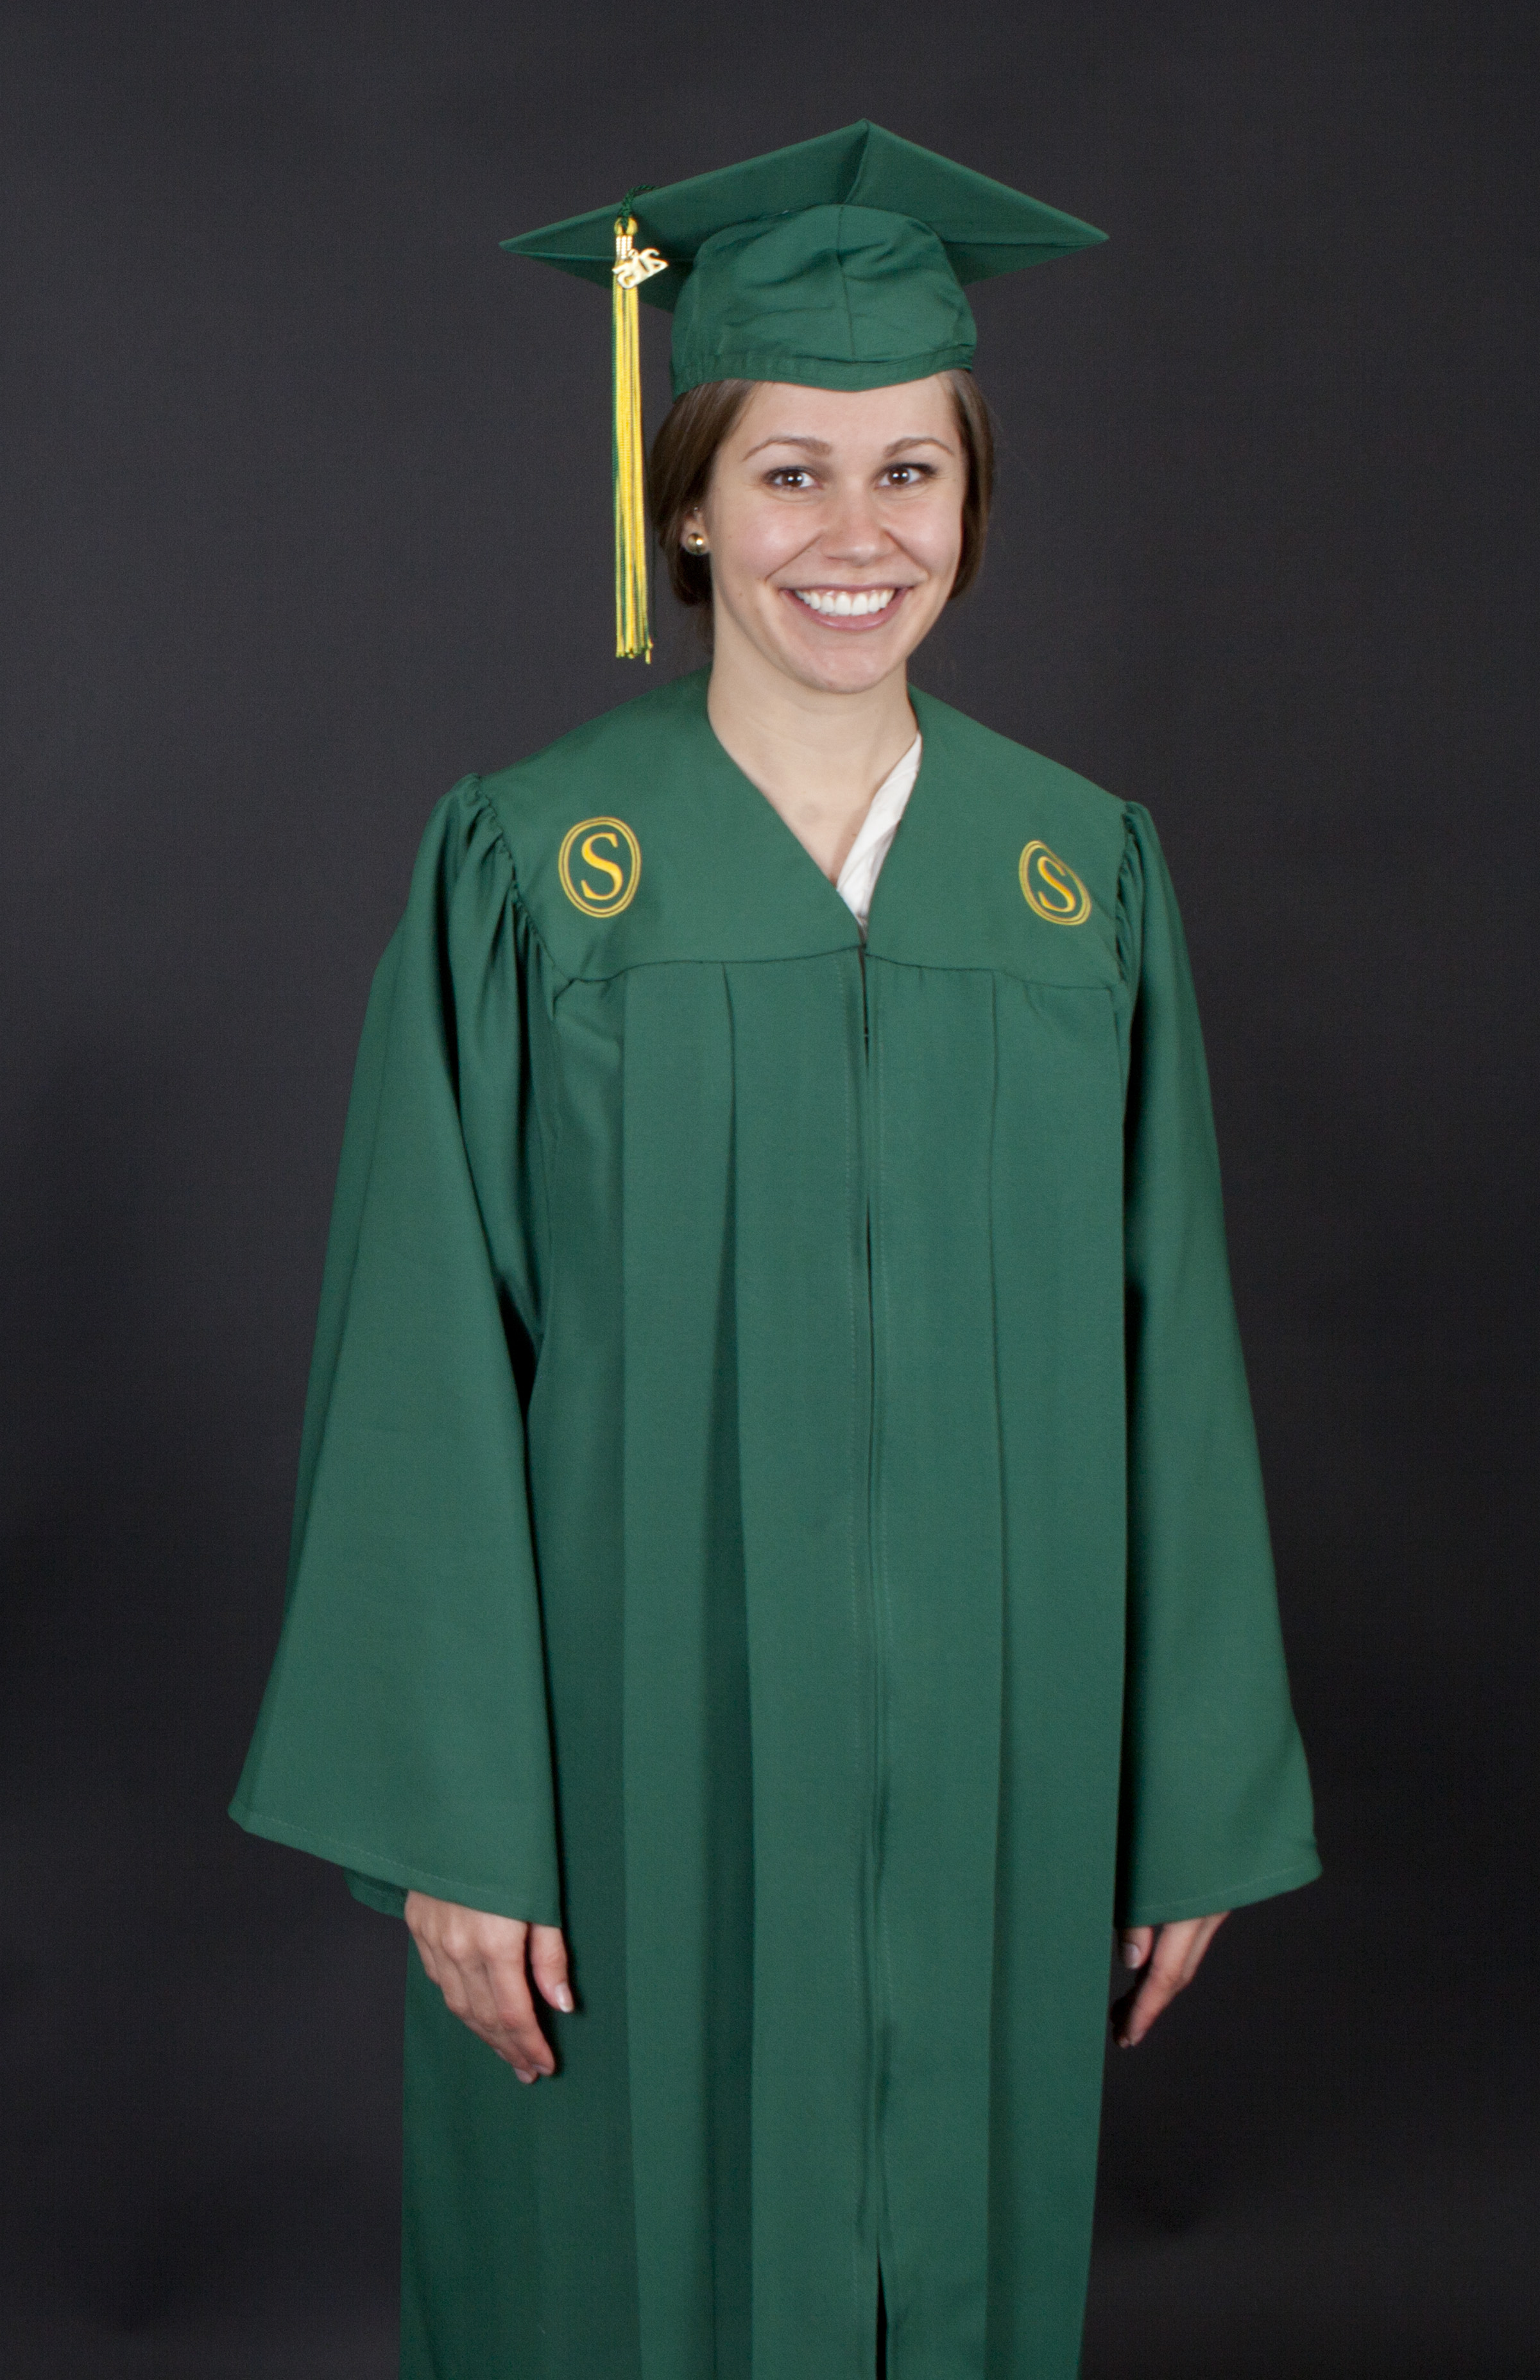 southeastern graduating students will sport new look